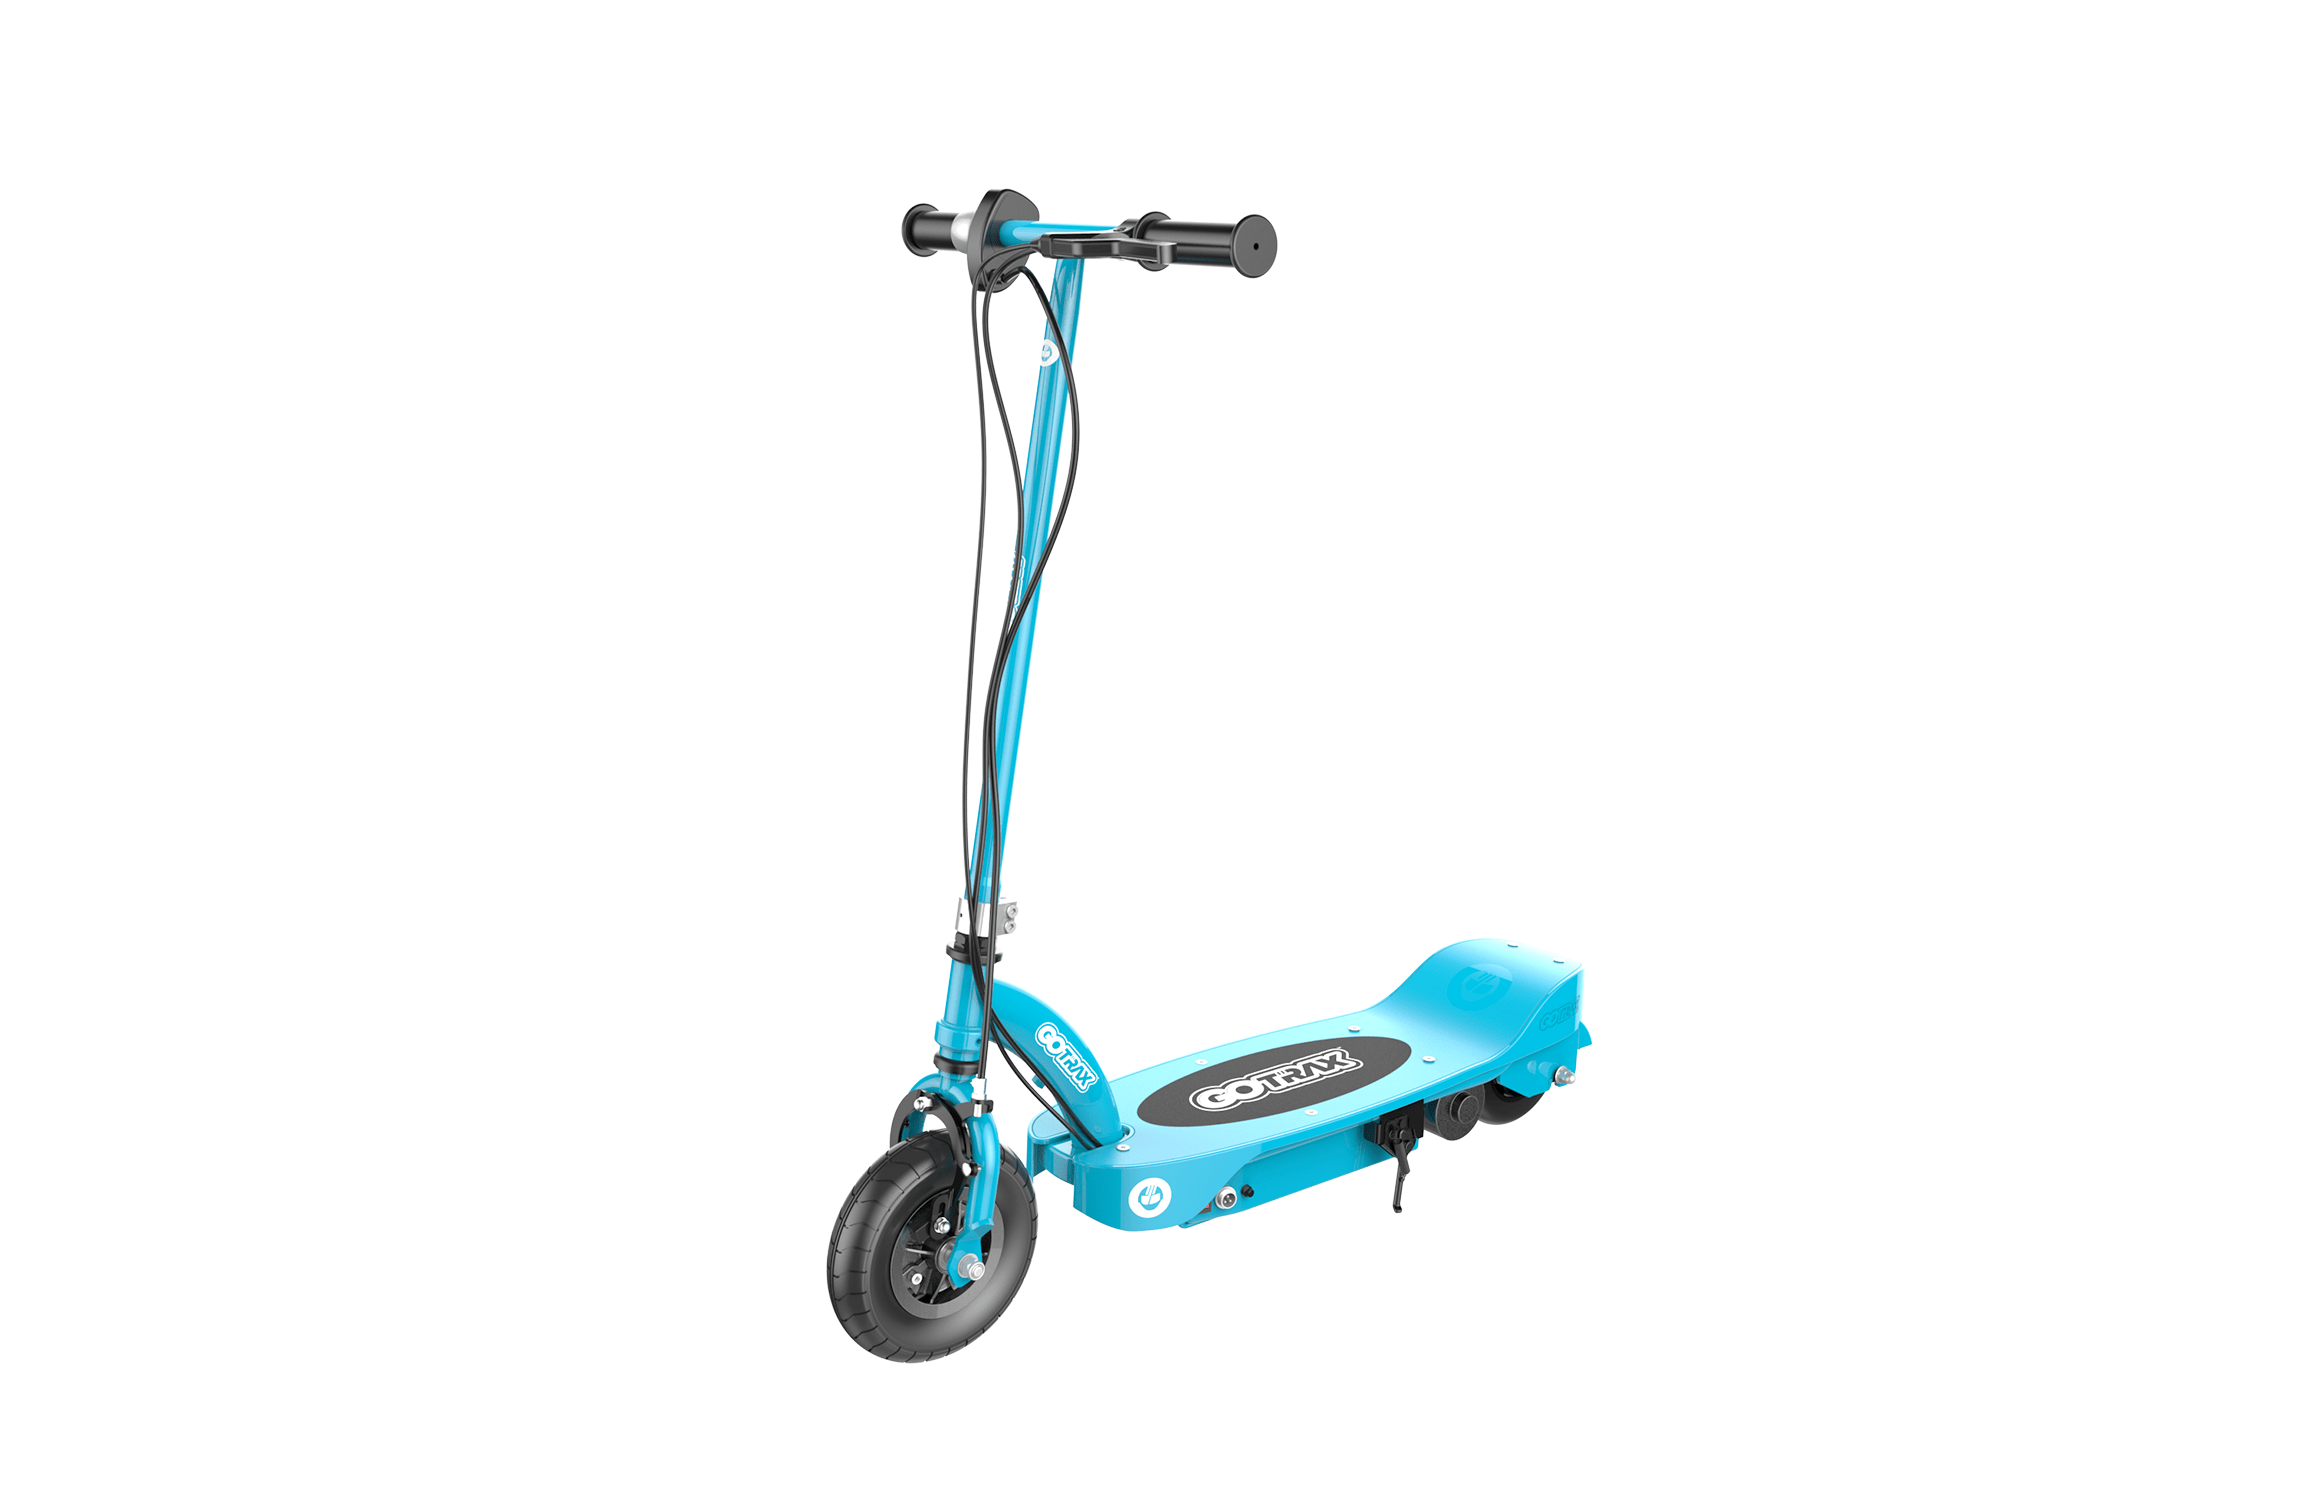 Gotrax Launches Glider Cadet Electric Scooter For Kids